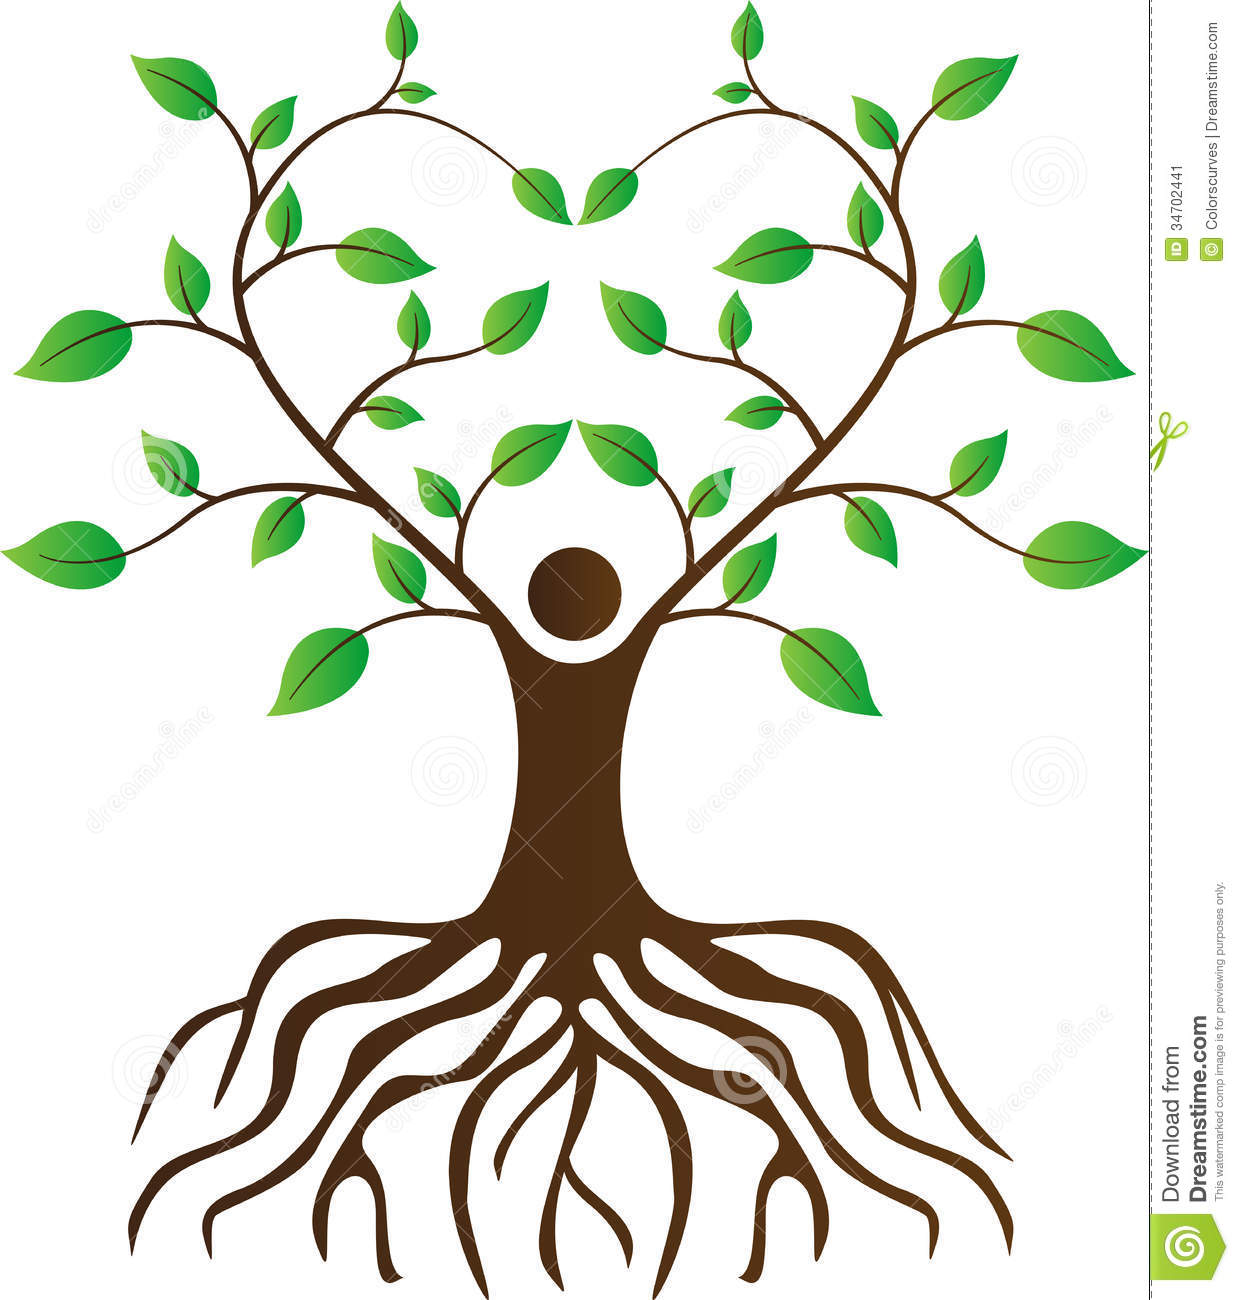 19 Graphic Tree With Roots Images